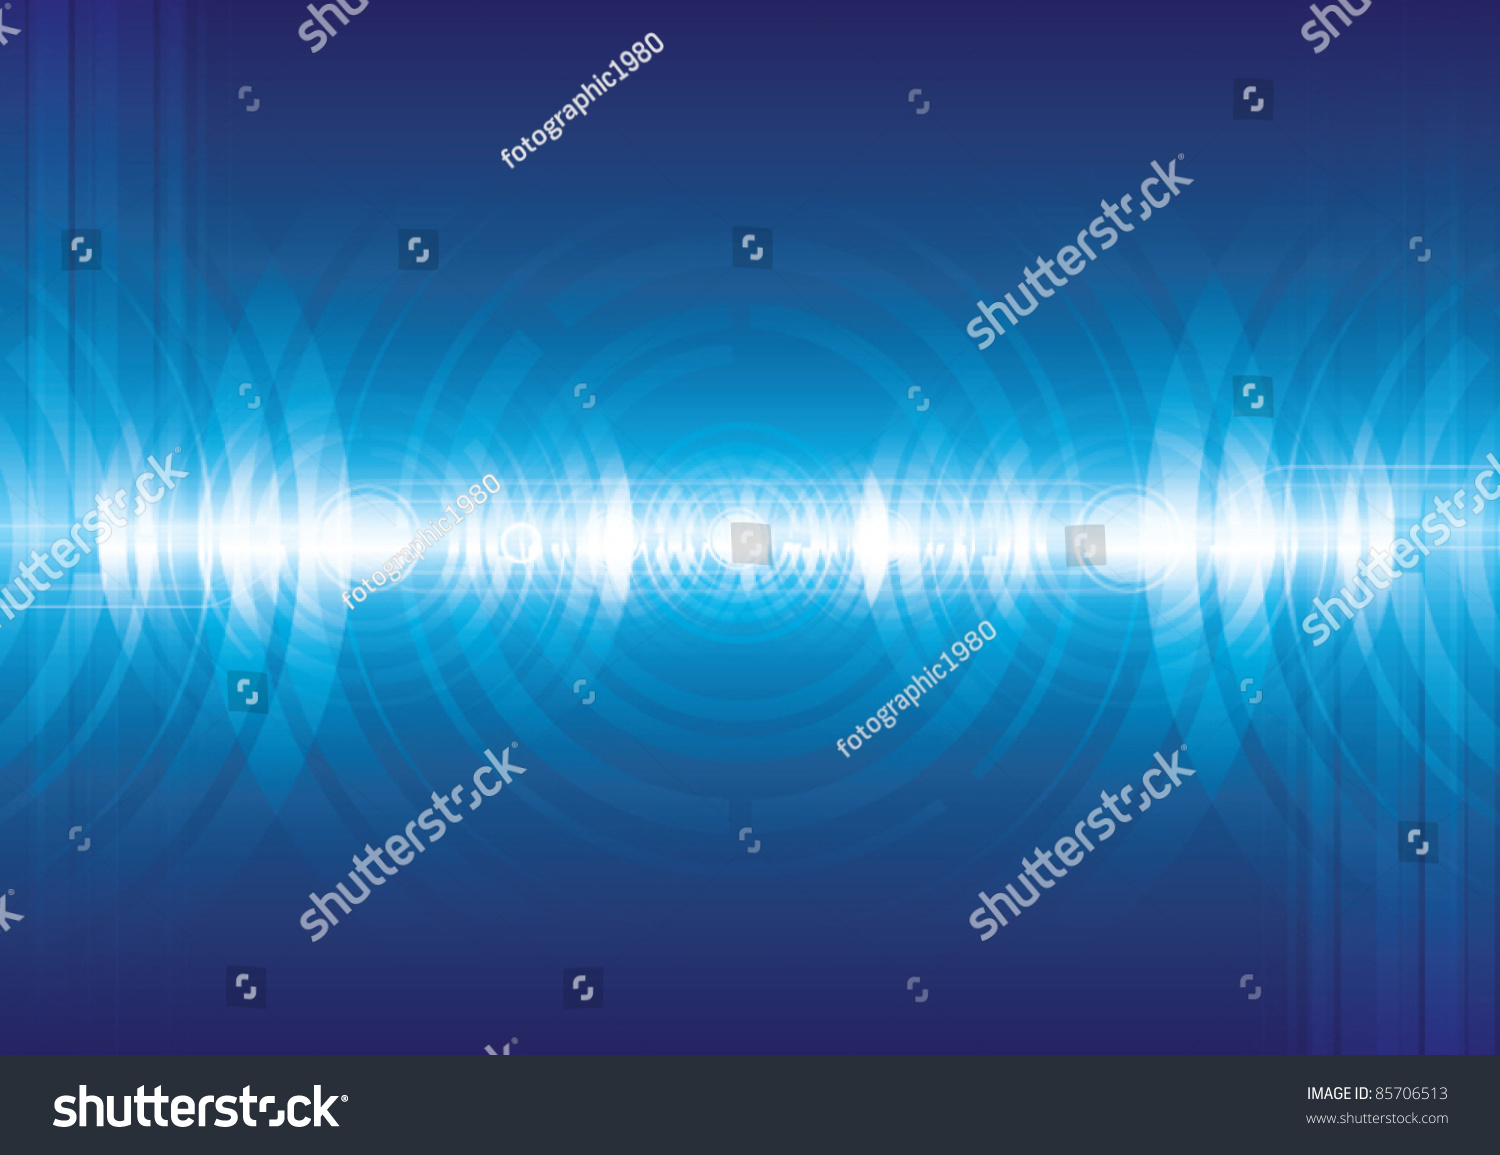 Abstract Digital Sound Wave Background Stock Vector 85706513 ...